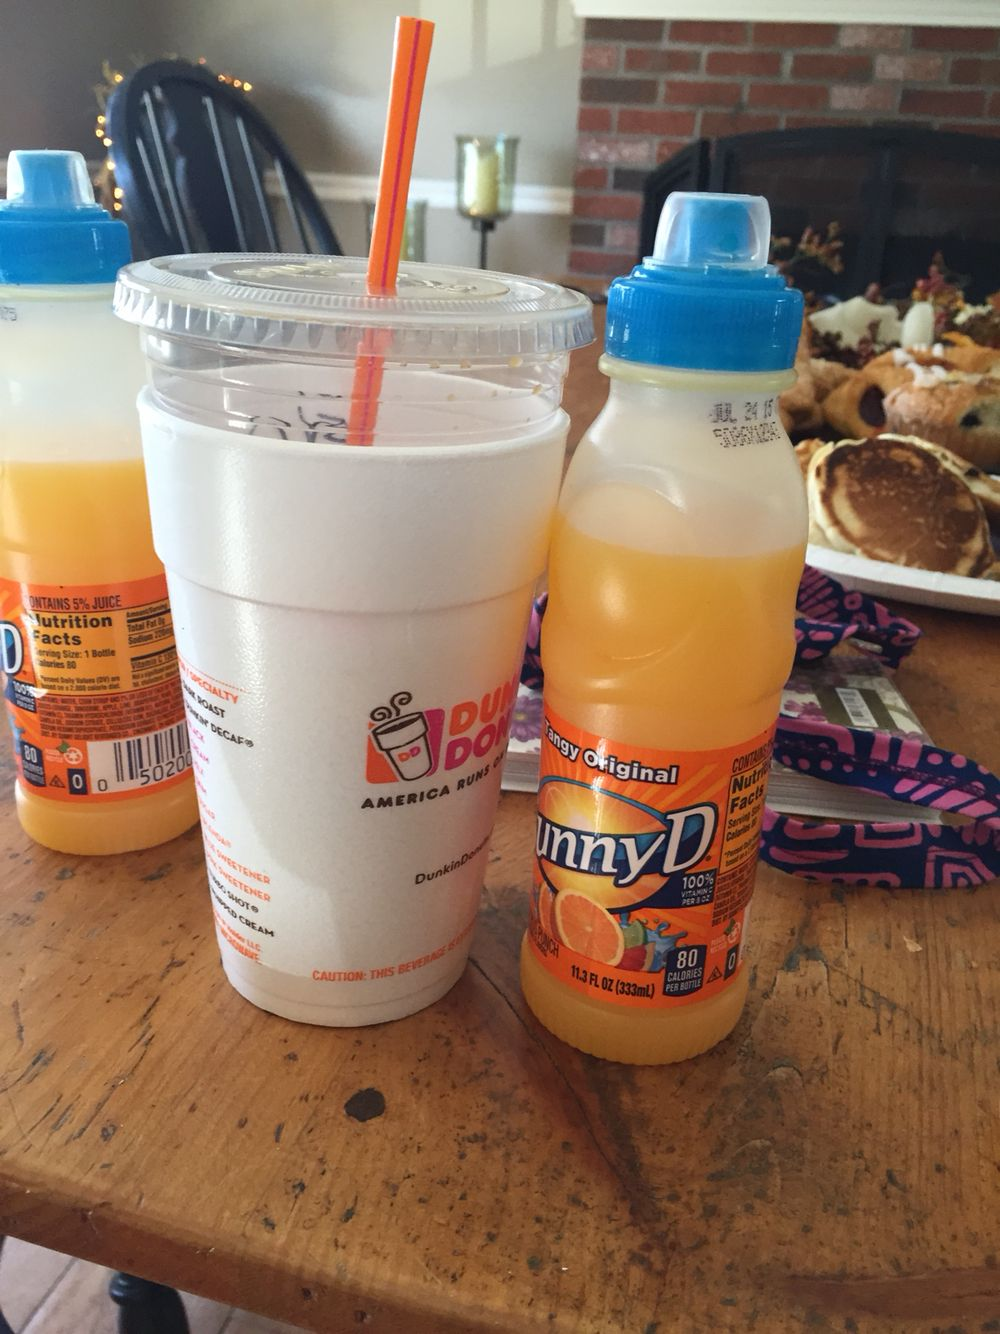 Unit 9 Conservation: Both the Dunkin cup and SunnyD cup both have about the same amount of liquid in it. A child who has not accomplished learning conservation yet may think that the SunnyD has more in it because it looks almost full. However. The Dunkin cup is obviously wider.